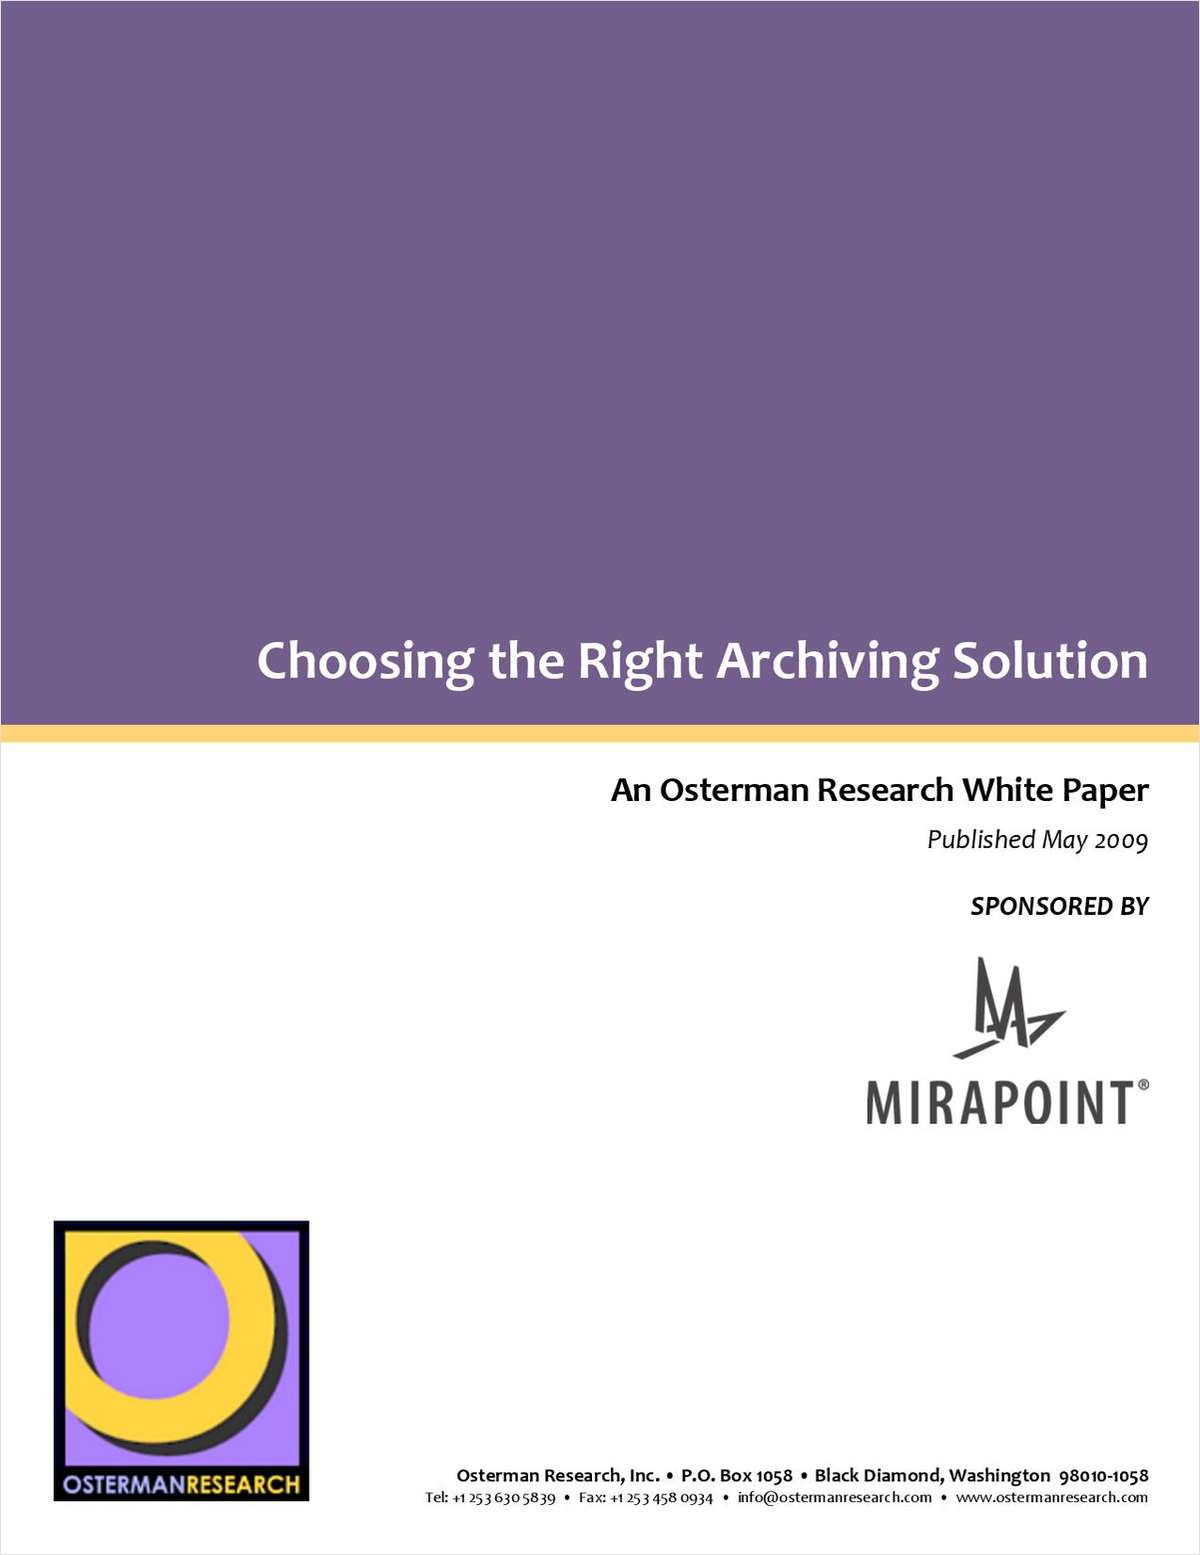 Choosing the Right Email Archiving Solution for your Enterprise